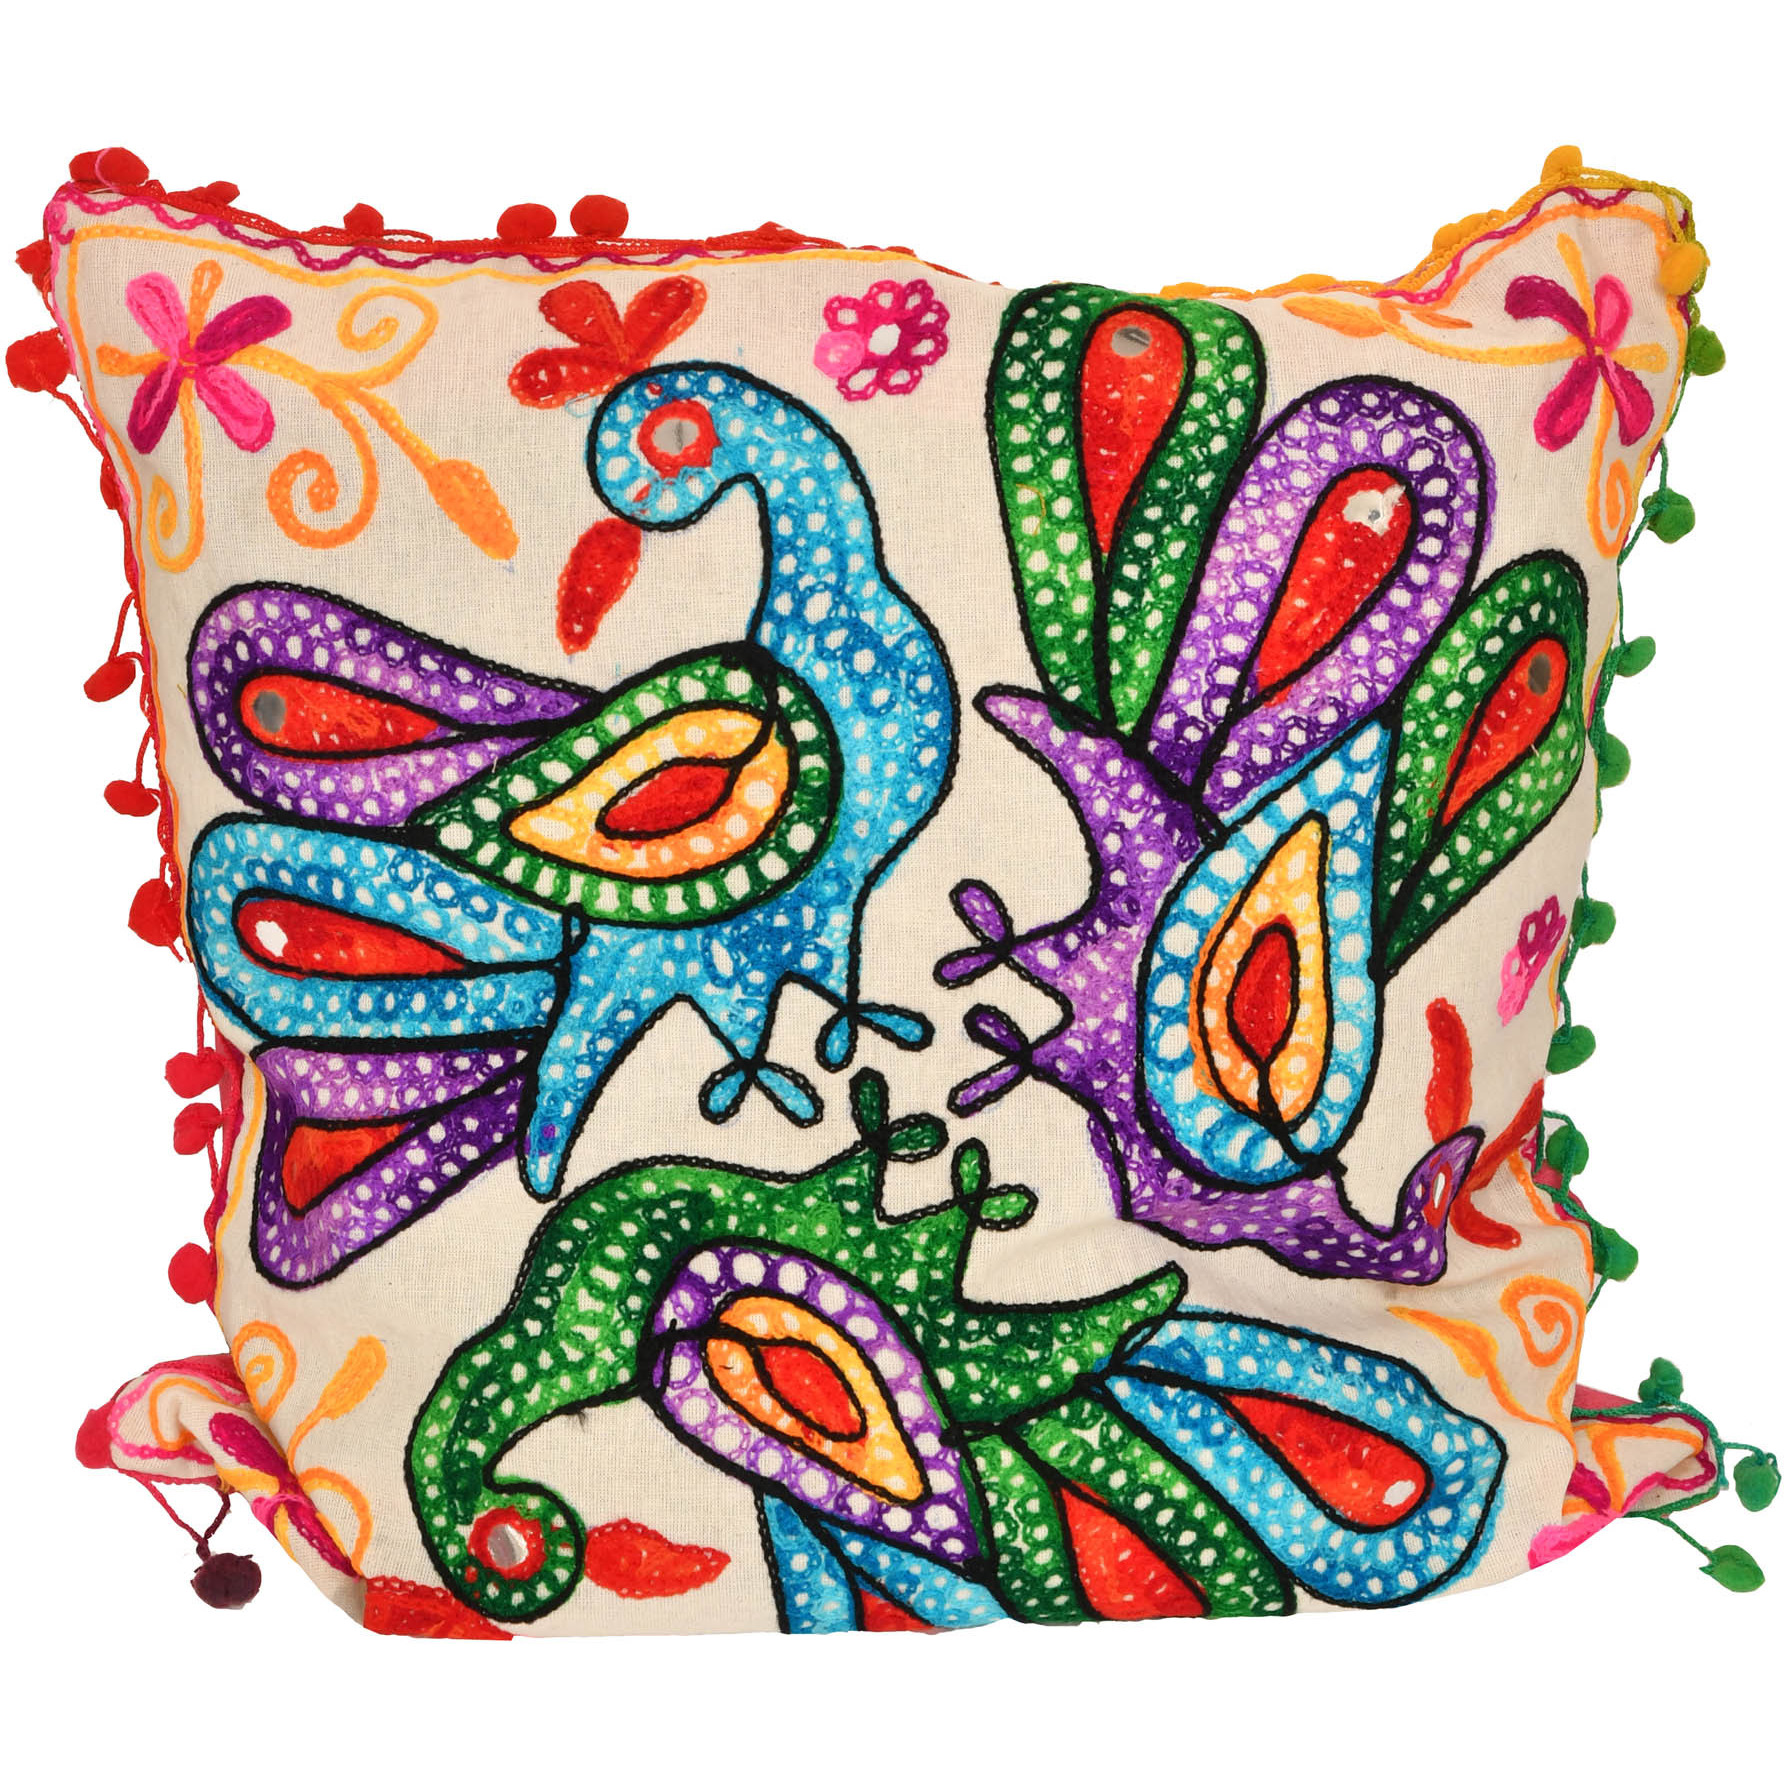 Cushion Cover with Ari-Embroidered Peacocks and Mirrors